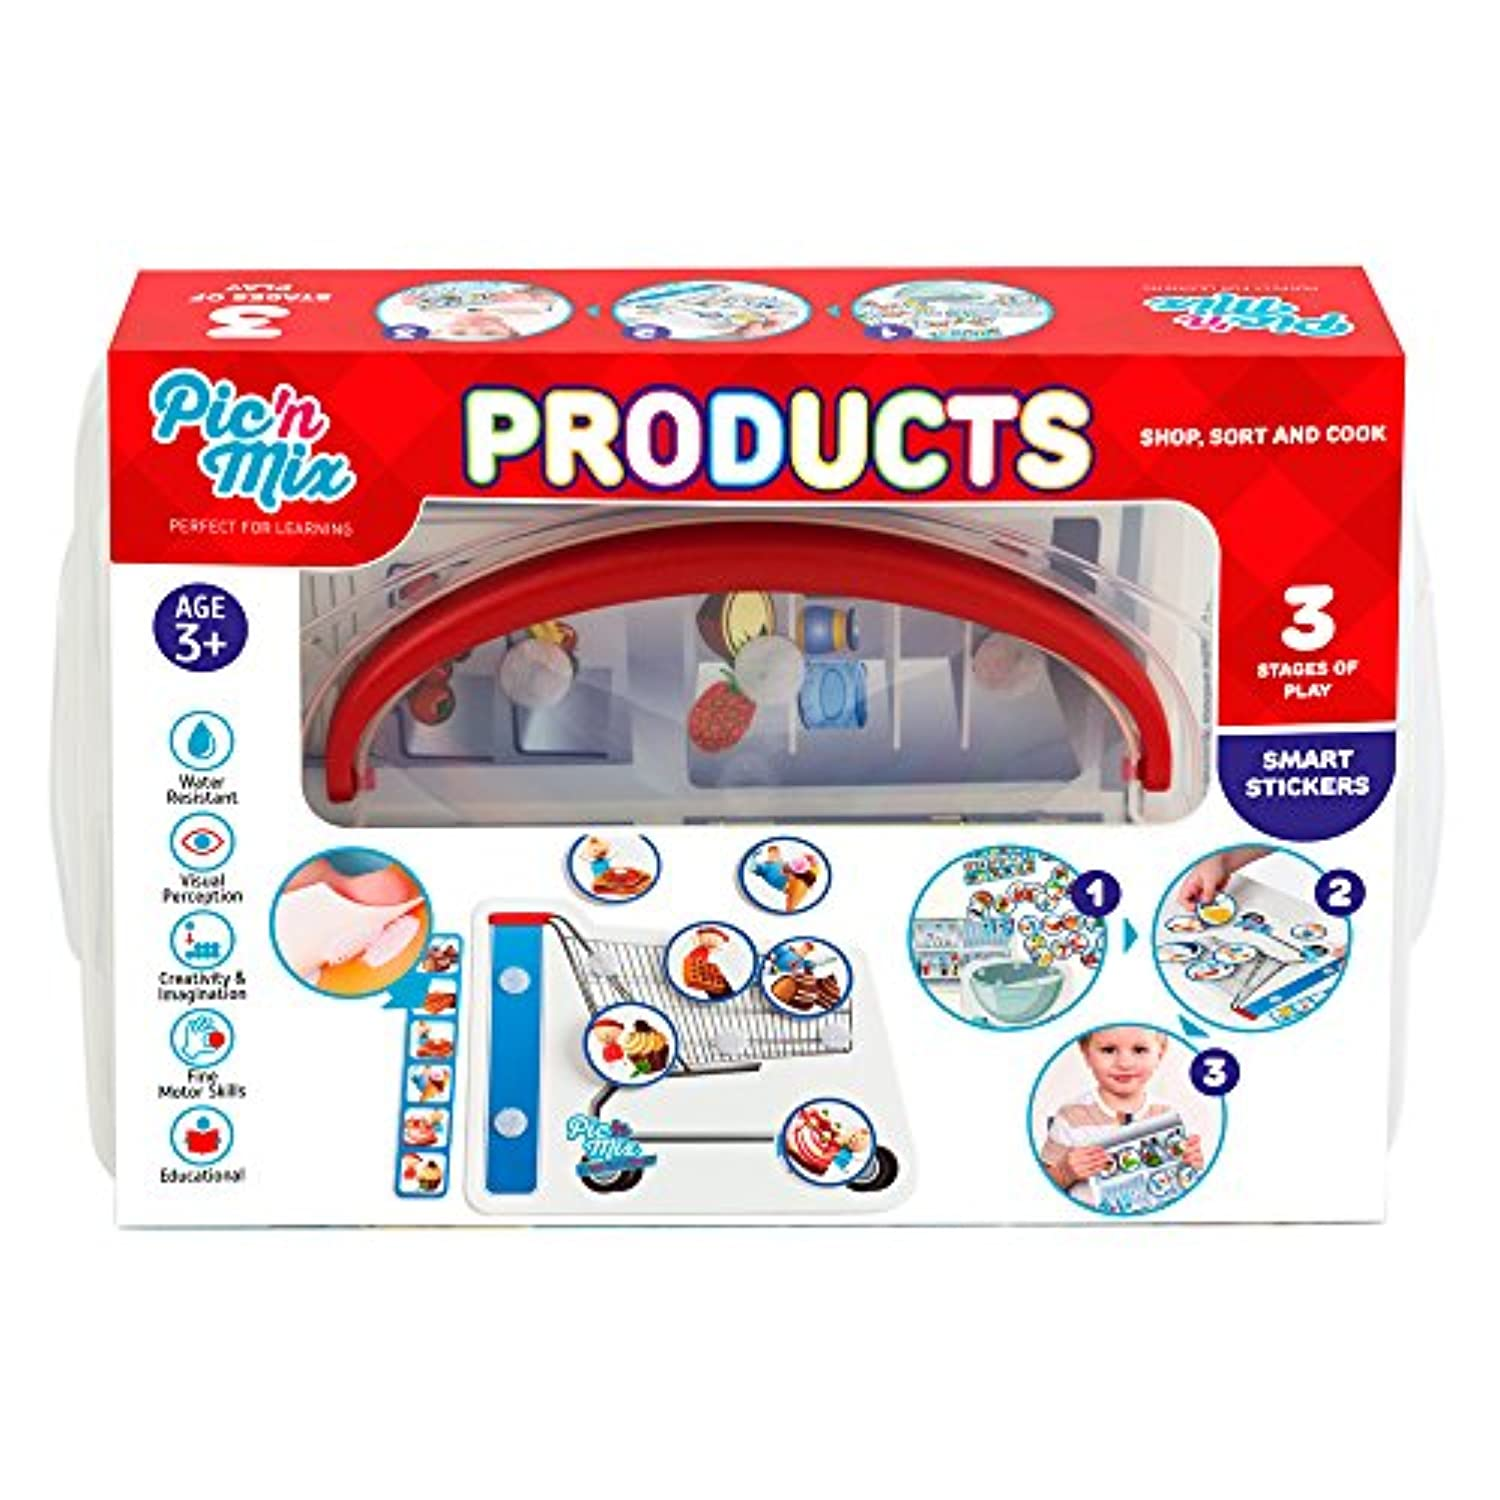 (Products) - Picnmix Products Educational and Learning Toys and Games for 3 year olds to 7 year olds